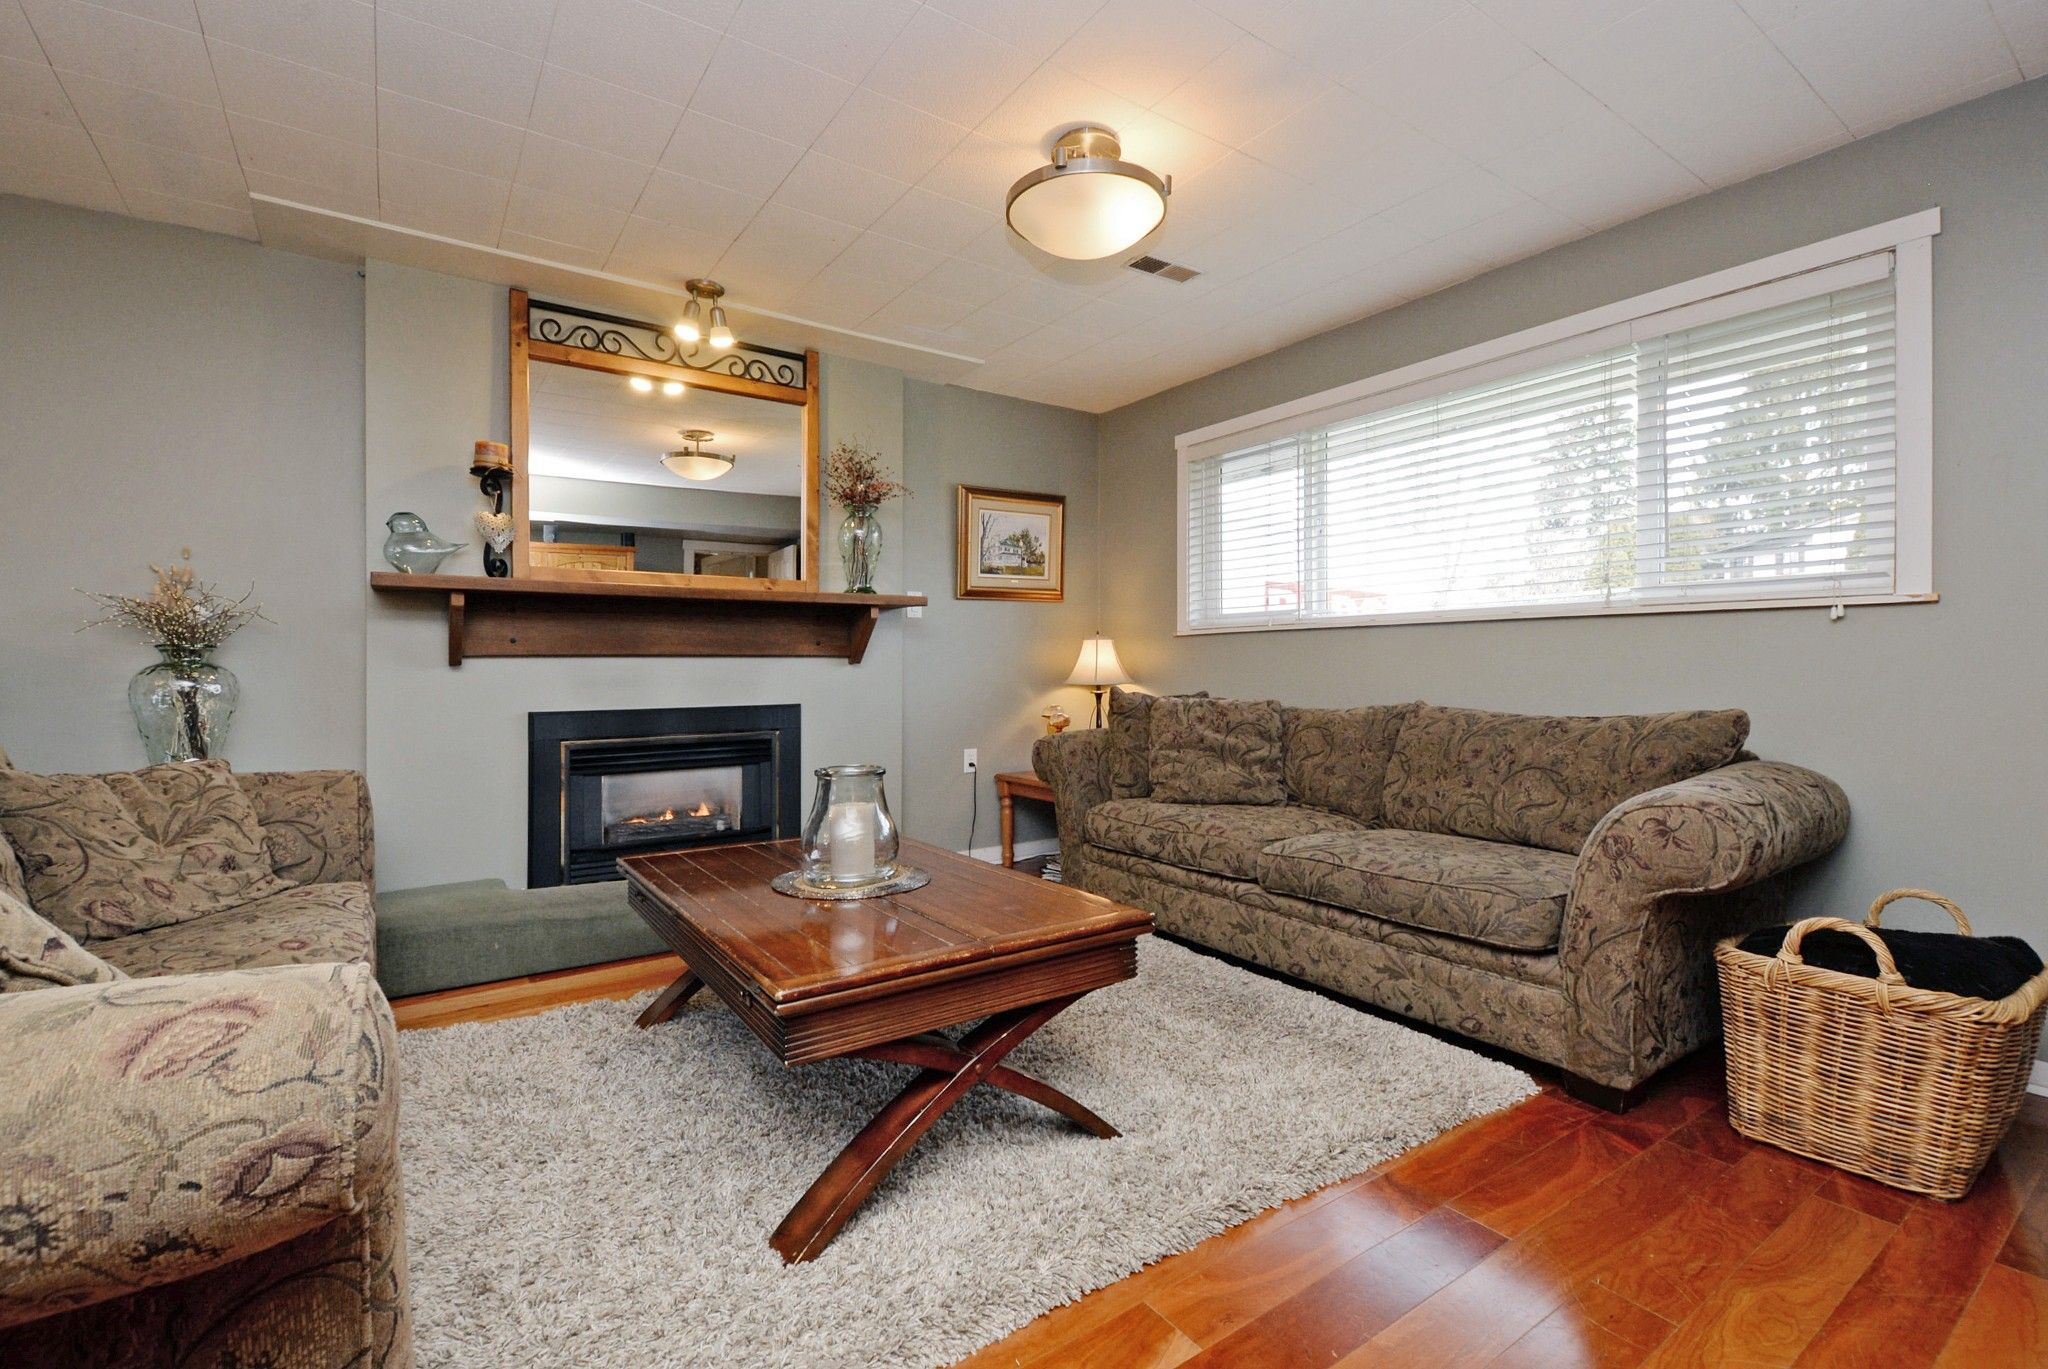 Photo 11: Photos: 5166 44 Avenue in Delta: Ladner Elementary House for sale (Ladner)  : MLS®# R2239309